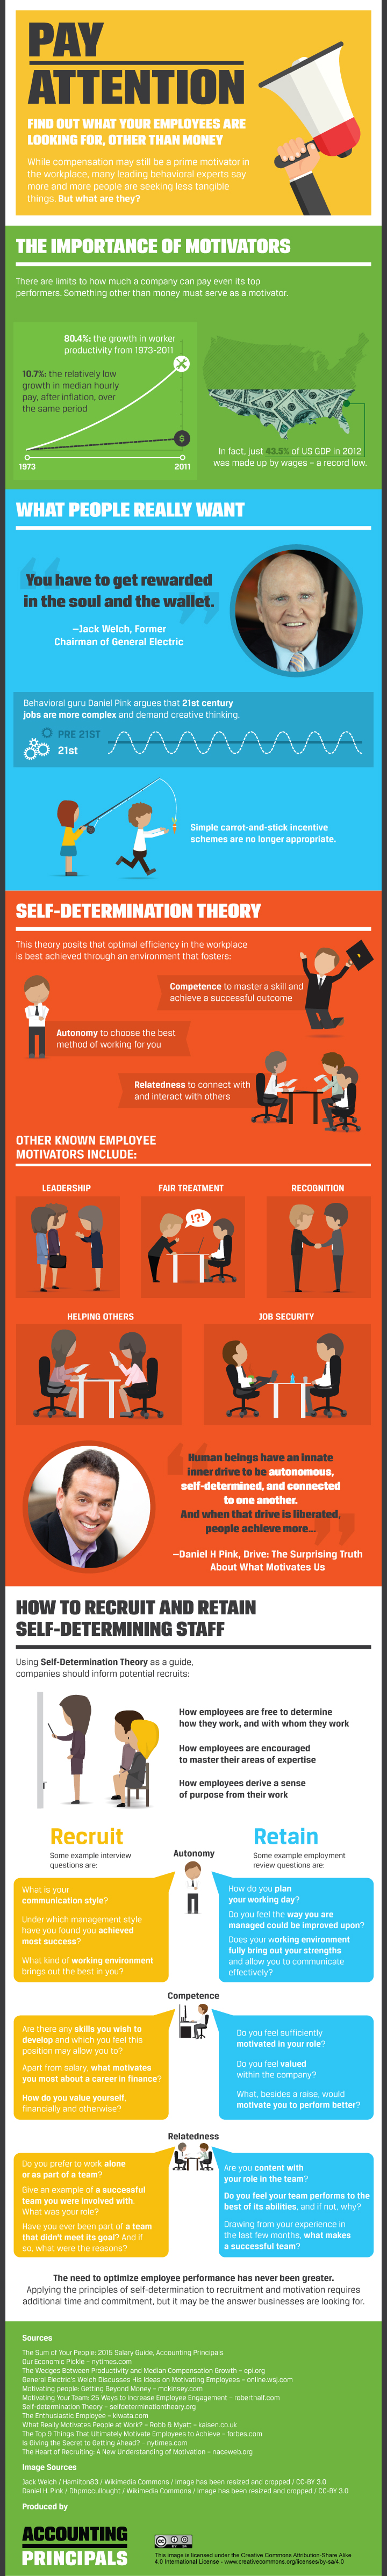 What are your employees looking for other than money? [infographic]